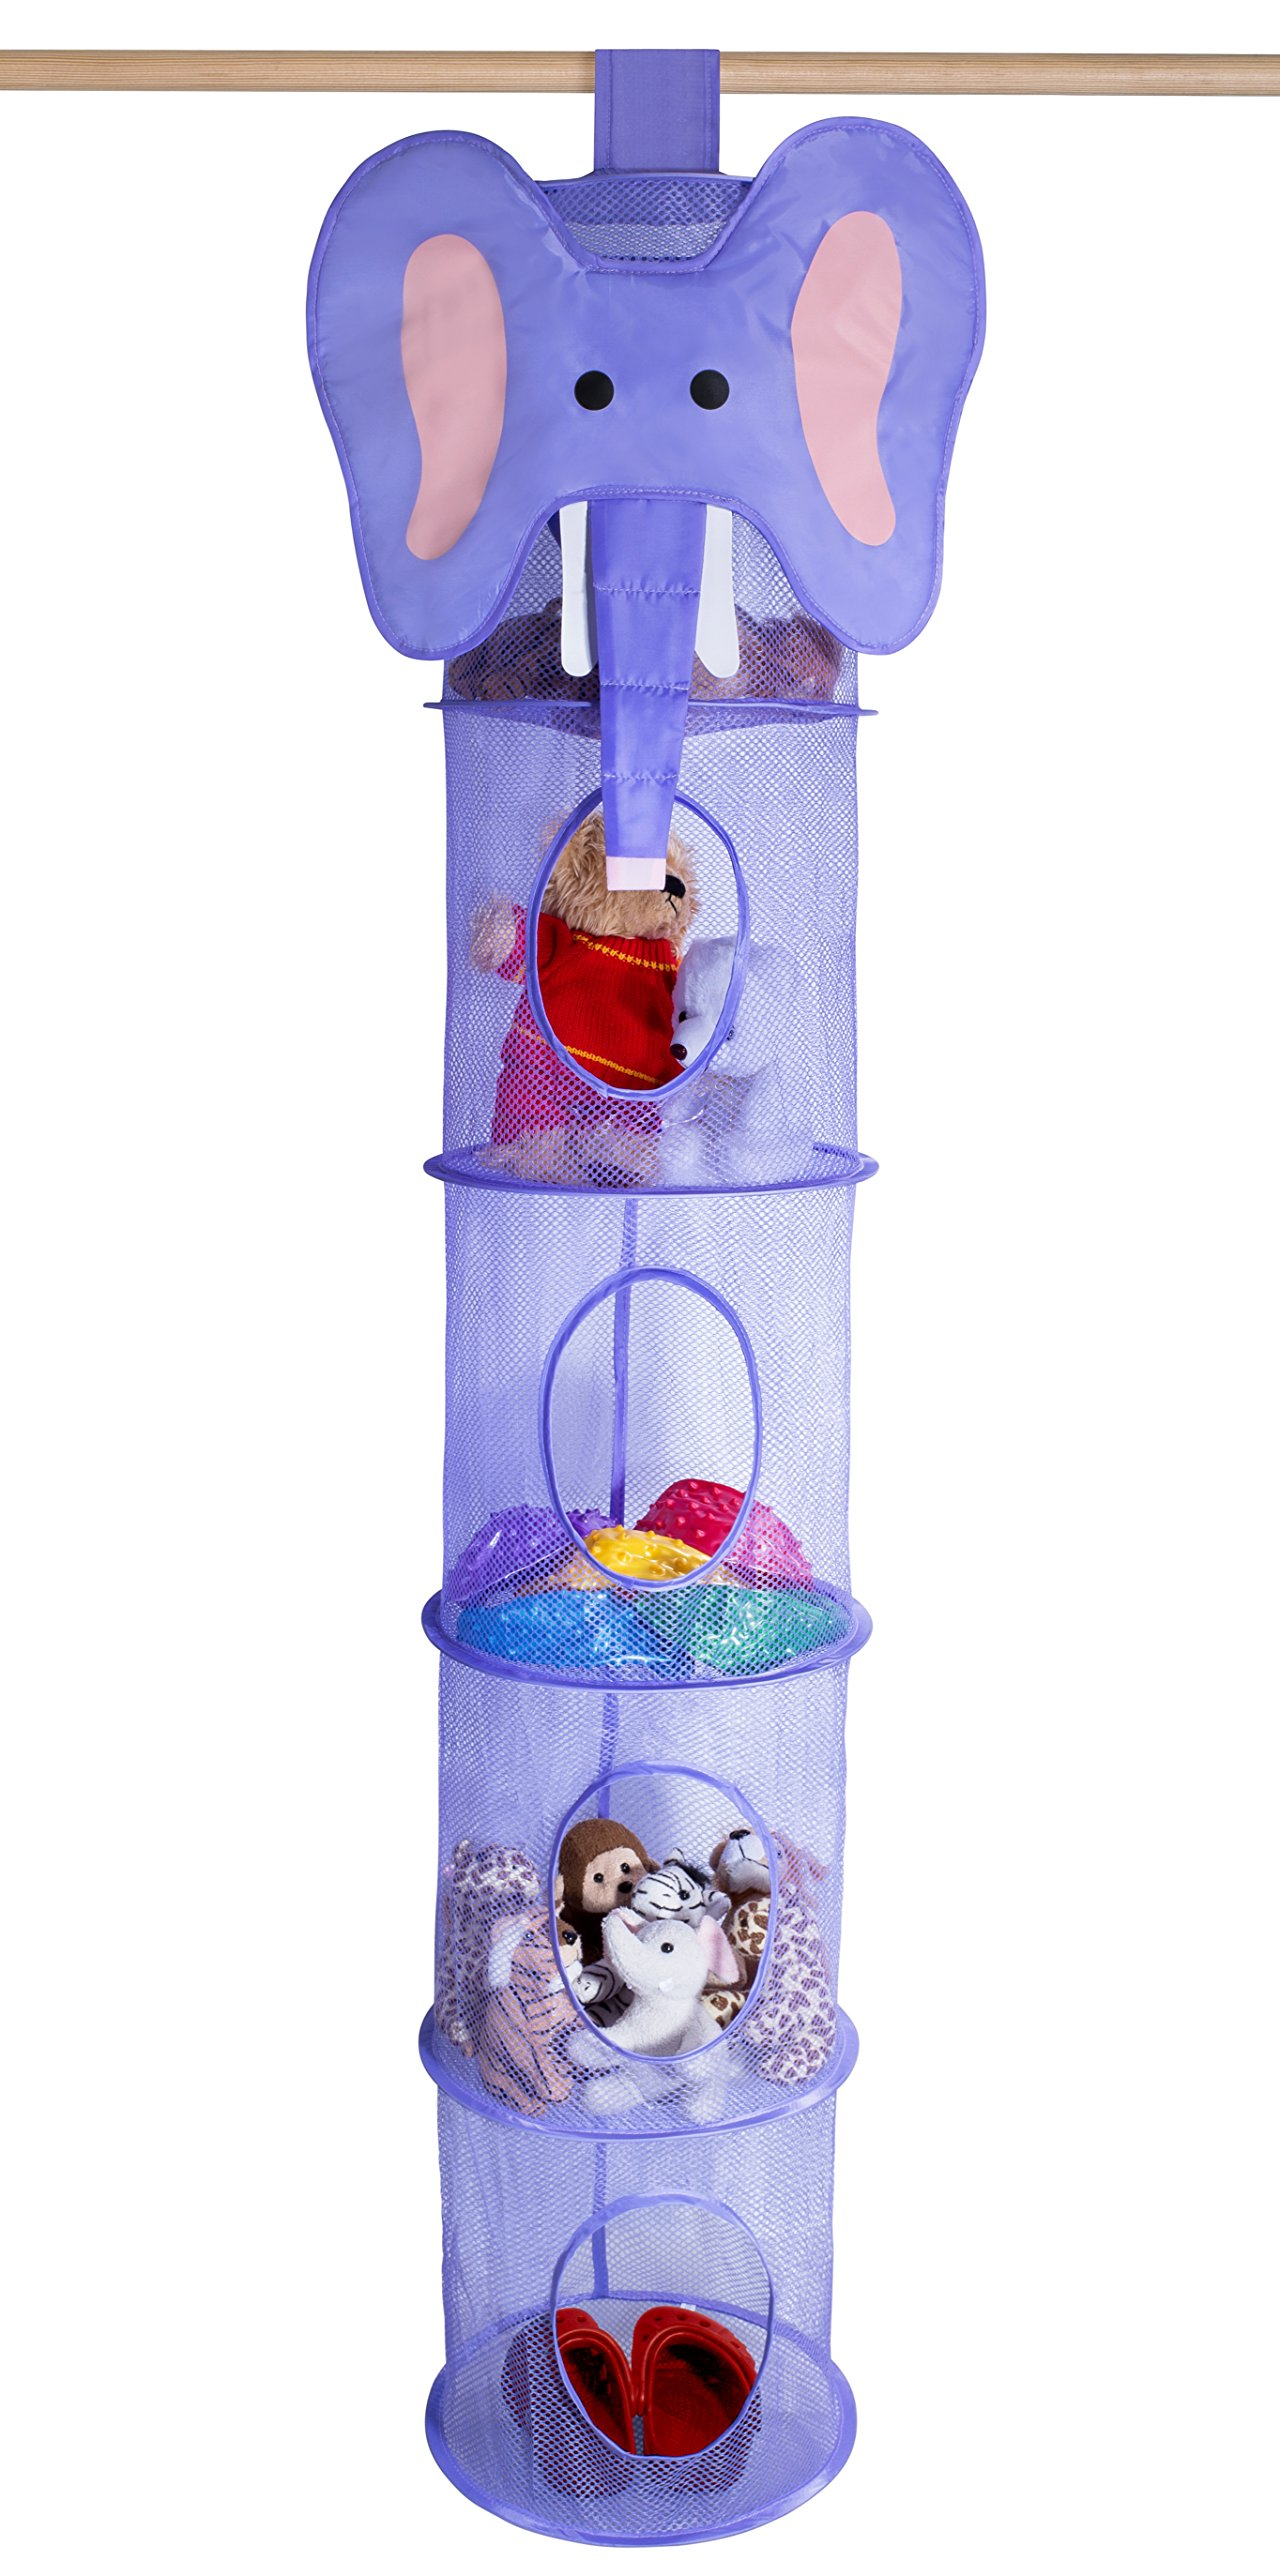 5 Tier Storage Organizer - 12'' X 59'' - Hang in Your Children's Room or Closet for a Fun Way to Organize Kids Toys or Store Gloves, Shawls, Hats and Mittens. Attaches Easily to Any Rod. (Elephant)